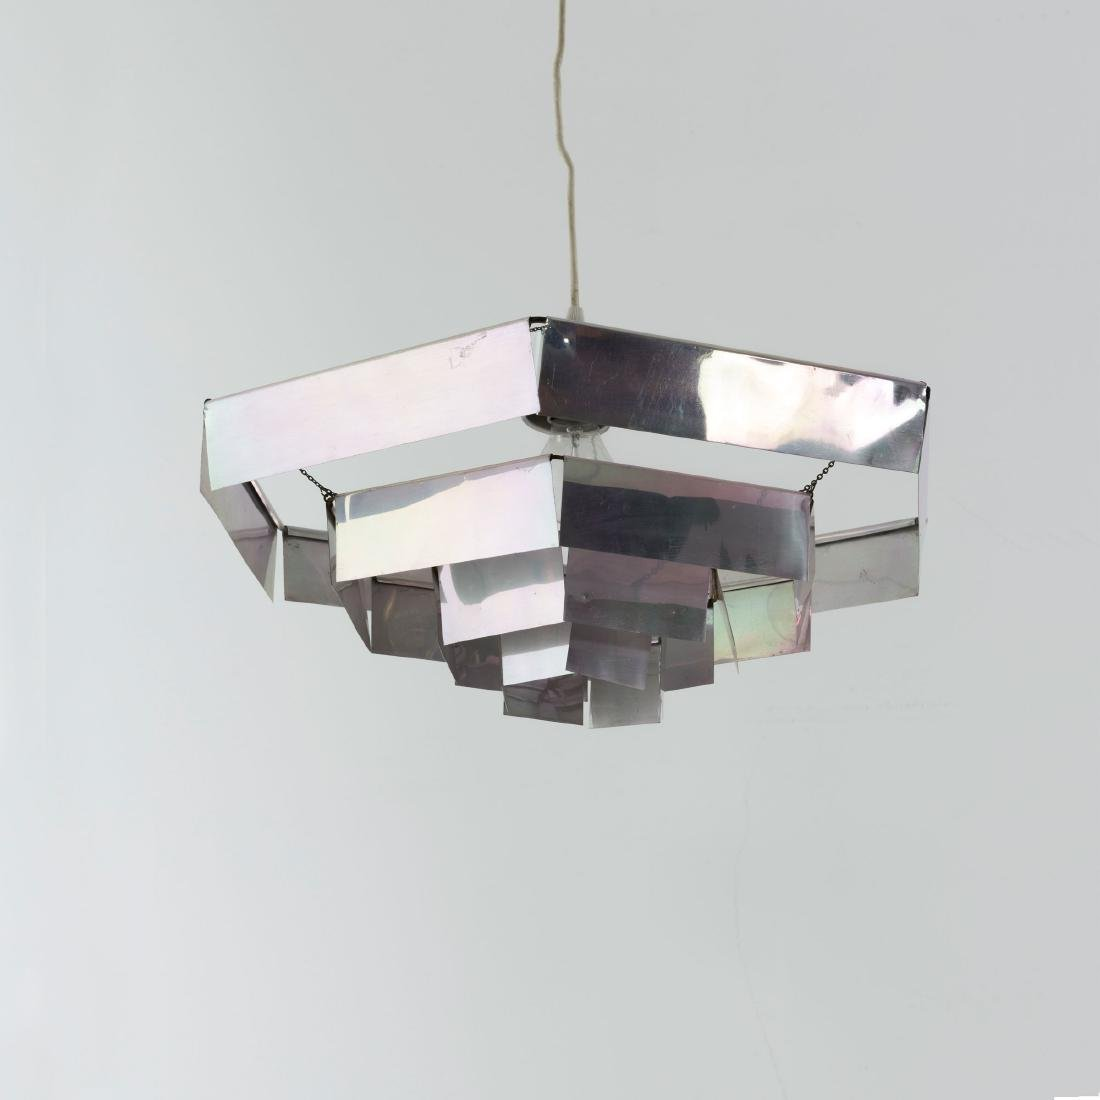 'Esagonale' ceiling light, 1964 - 3